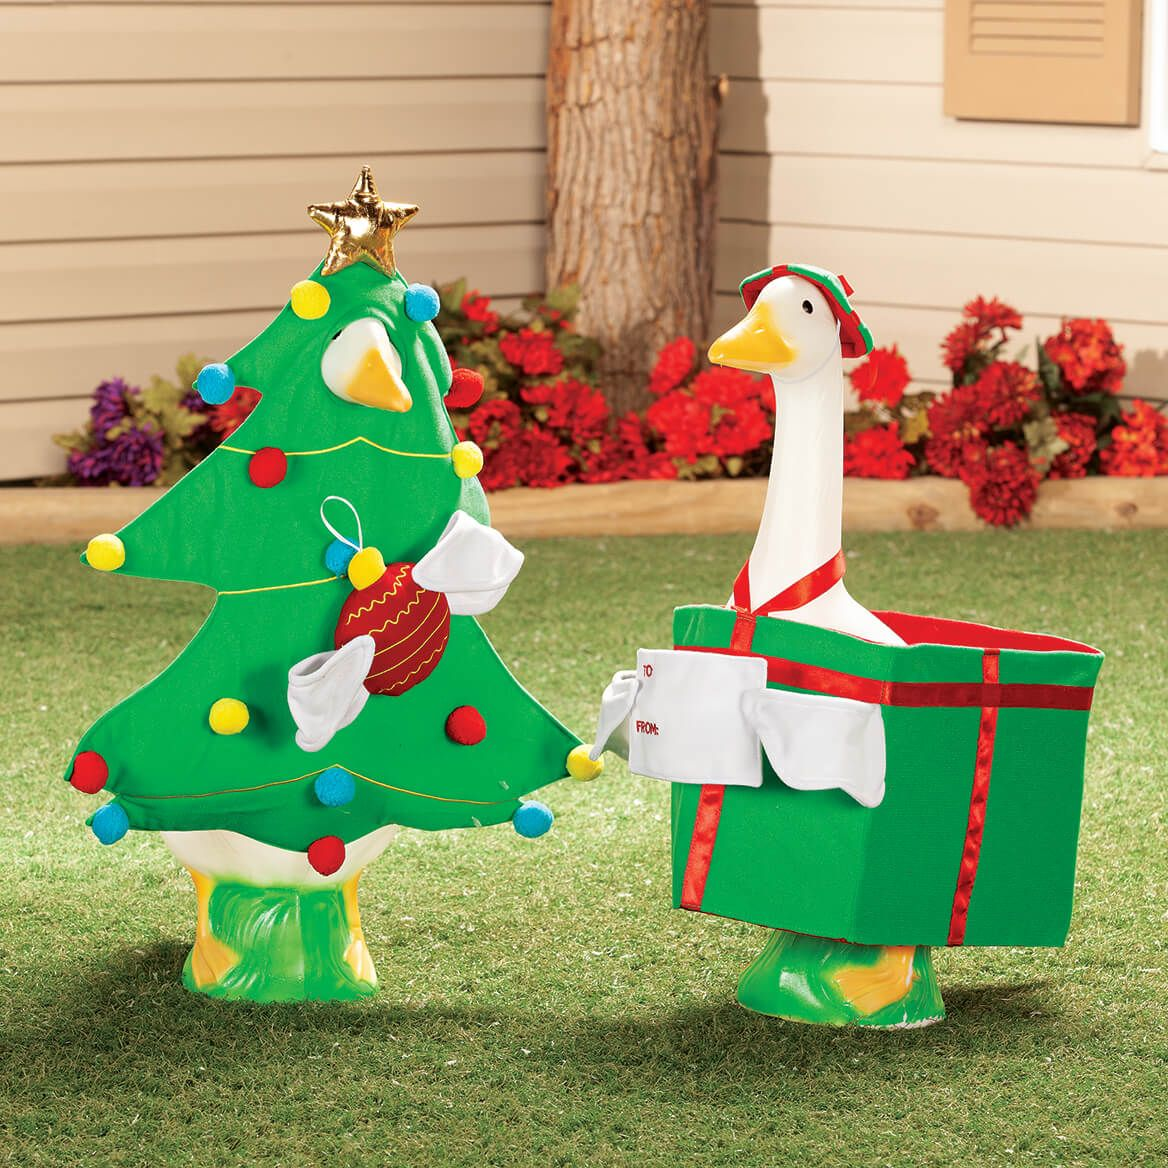 Christmas Tree Goose Outfit Miles Kimball Goose Miles Kimball Goose Clothes Christmas Yard Decorations Christmas Tree With Presents